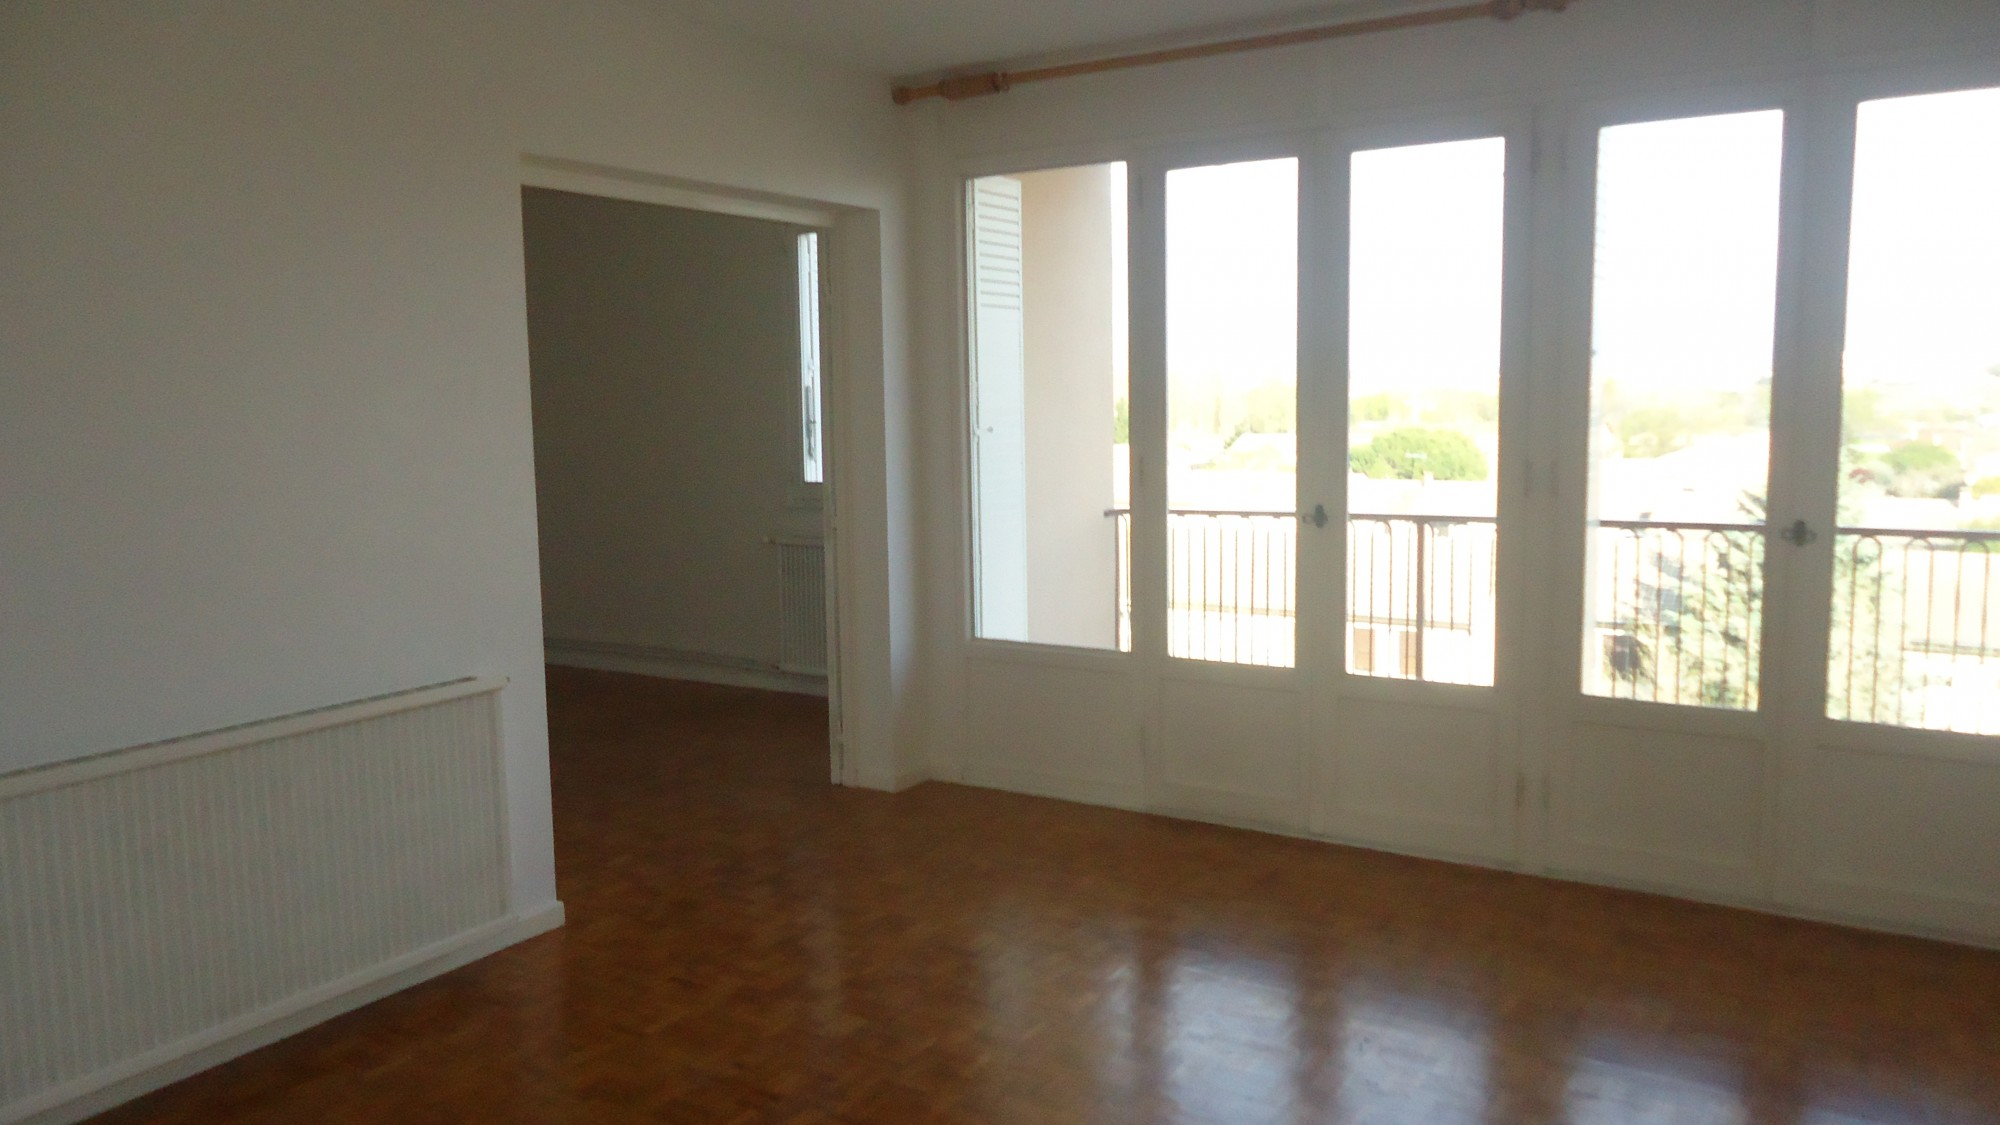 Guilherand granges location appartement 3 chambres avec garage location agence immobili re - Appartement guilherand granges ...